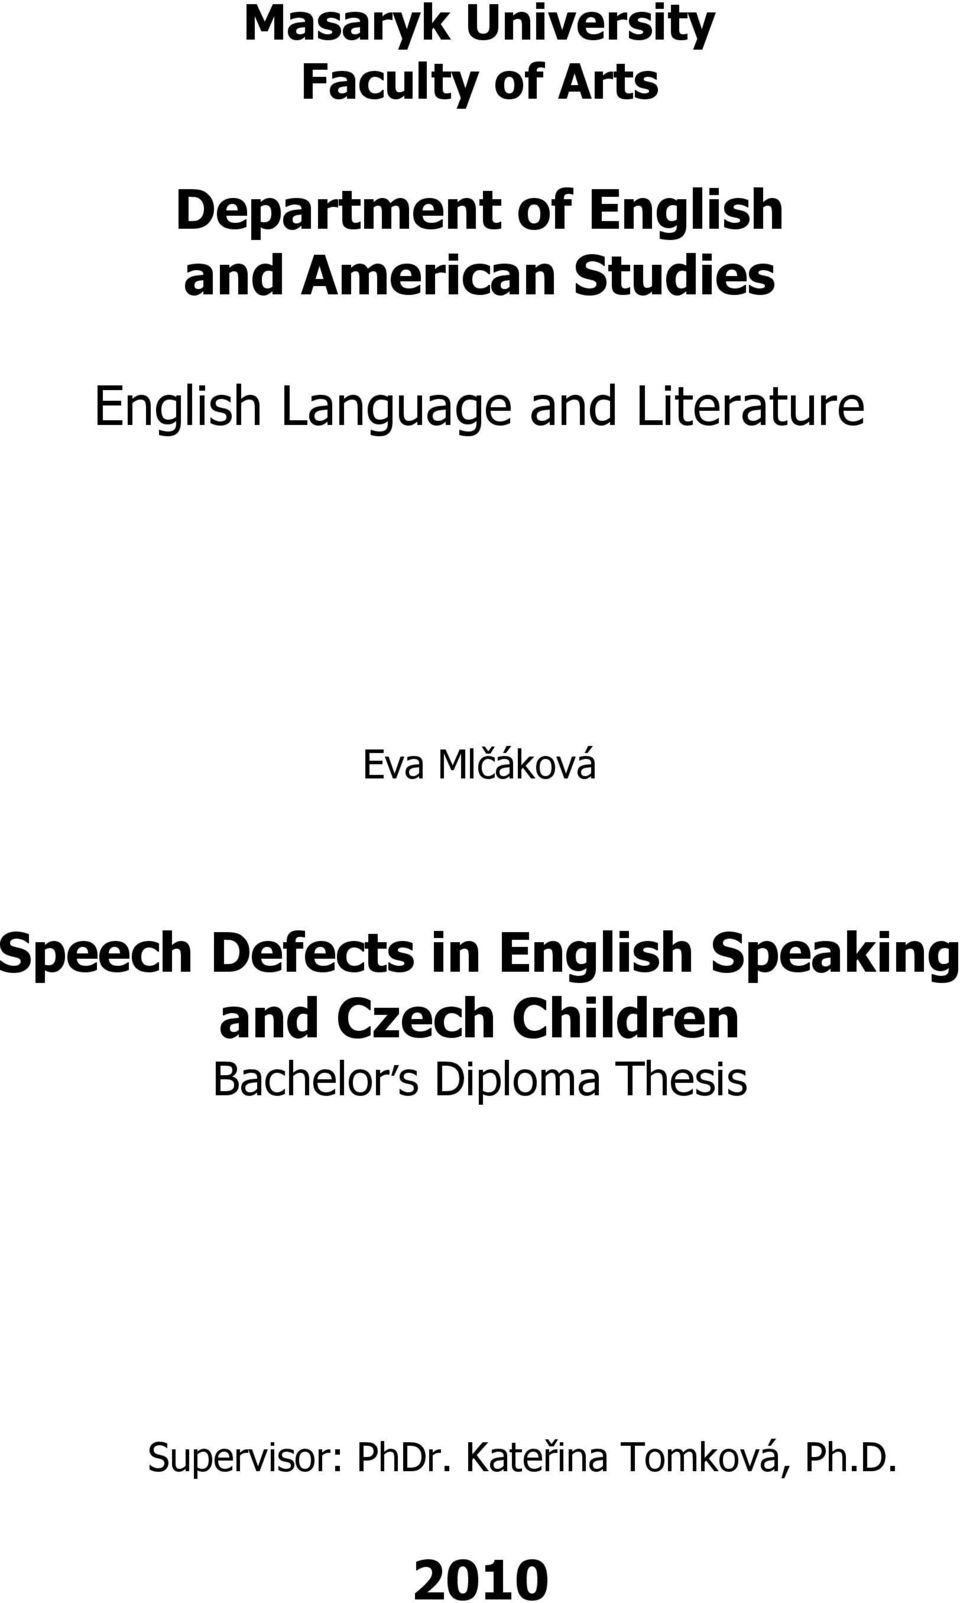 Speech Defects in English Speaking and Czech Children Bachelor